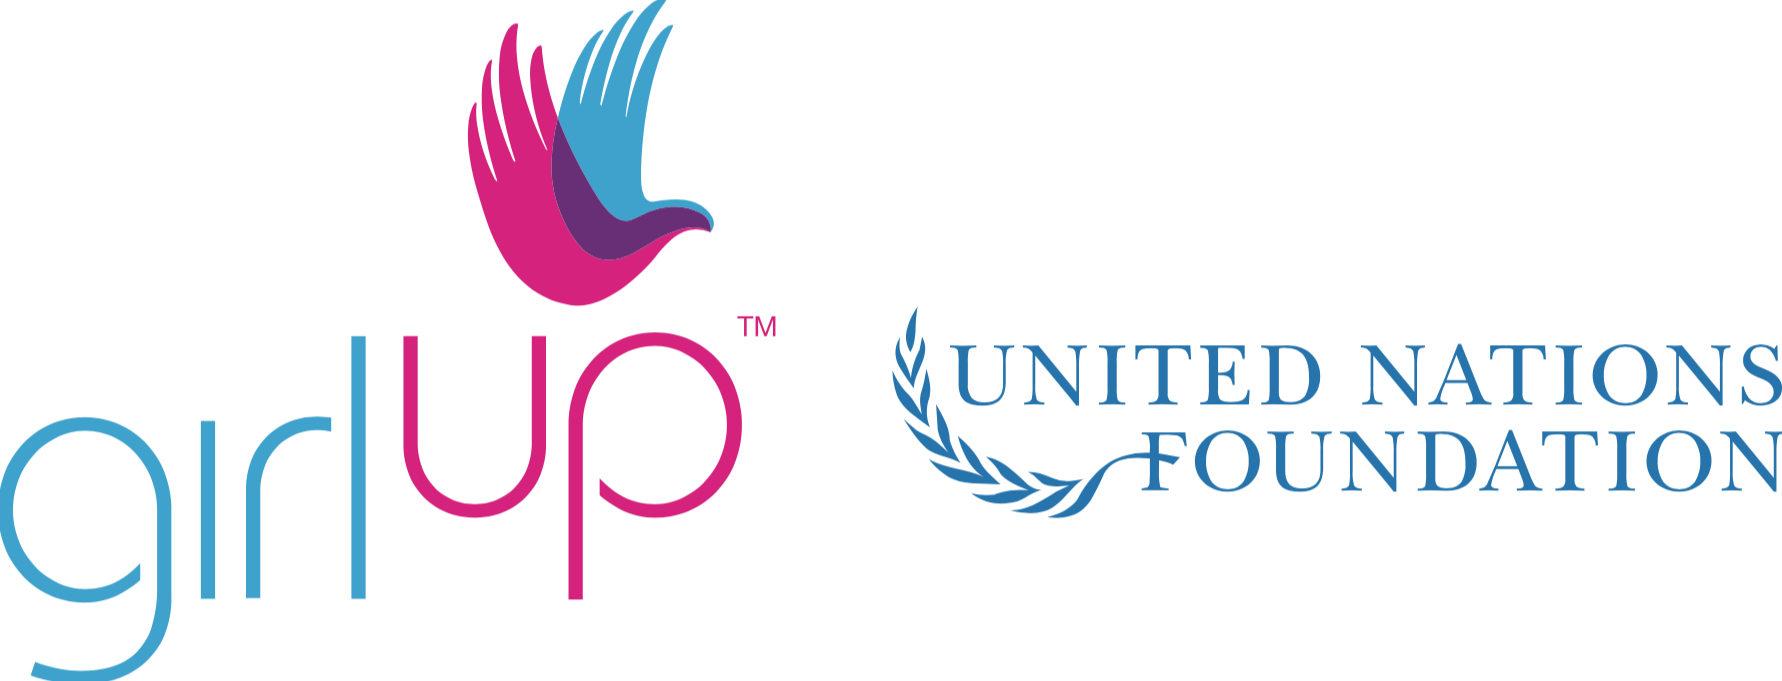 GIRL UP - Donate directly to Girl Up at GirlUp.org